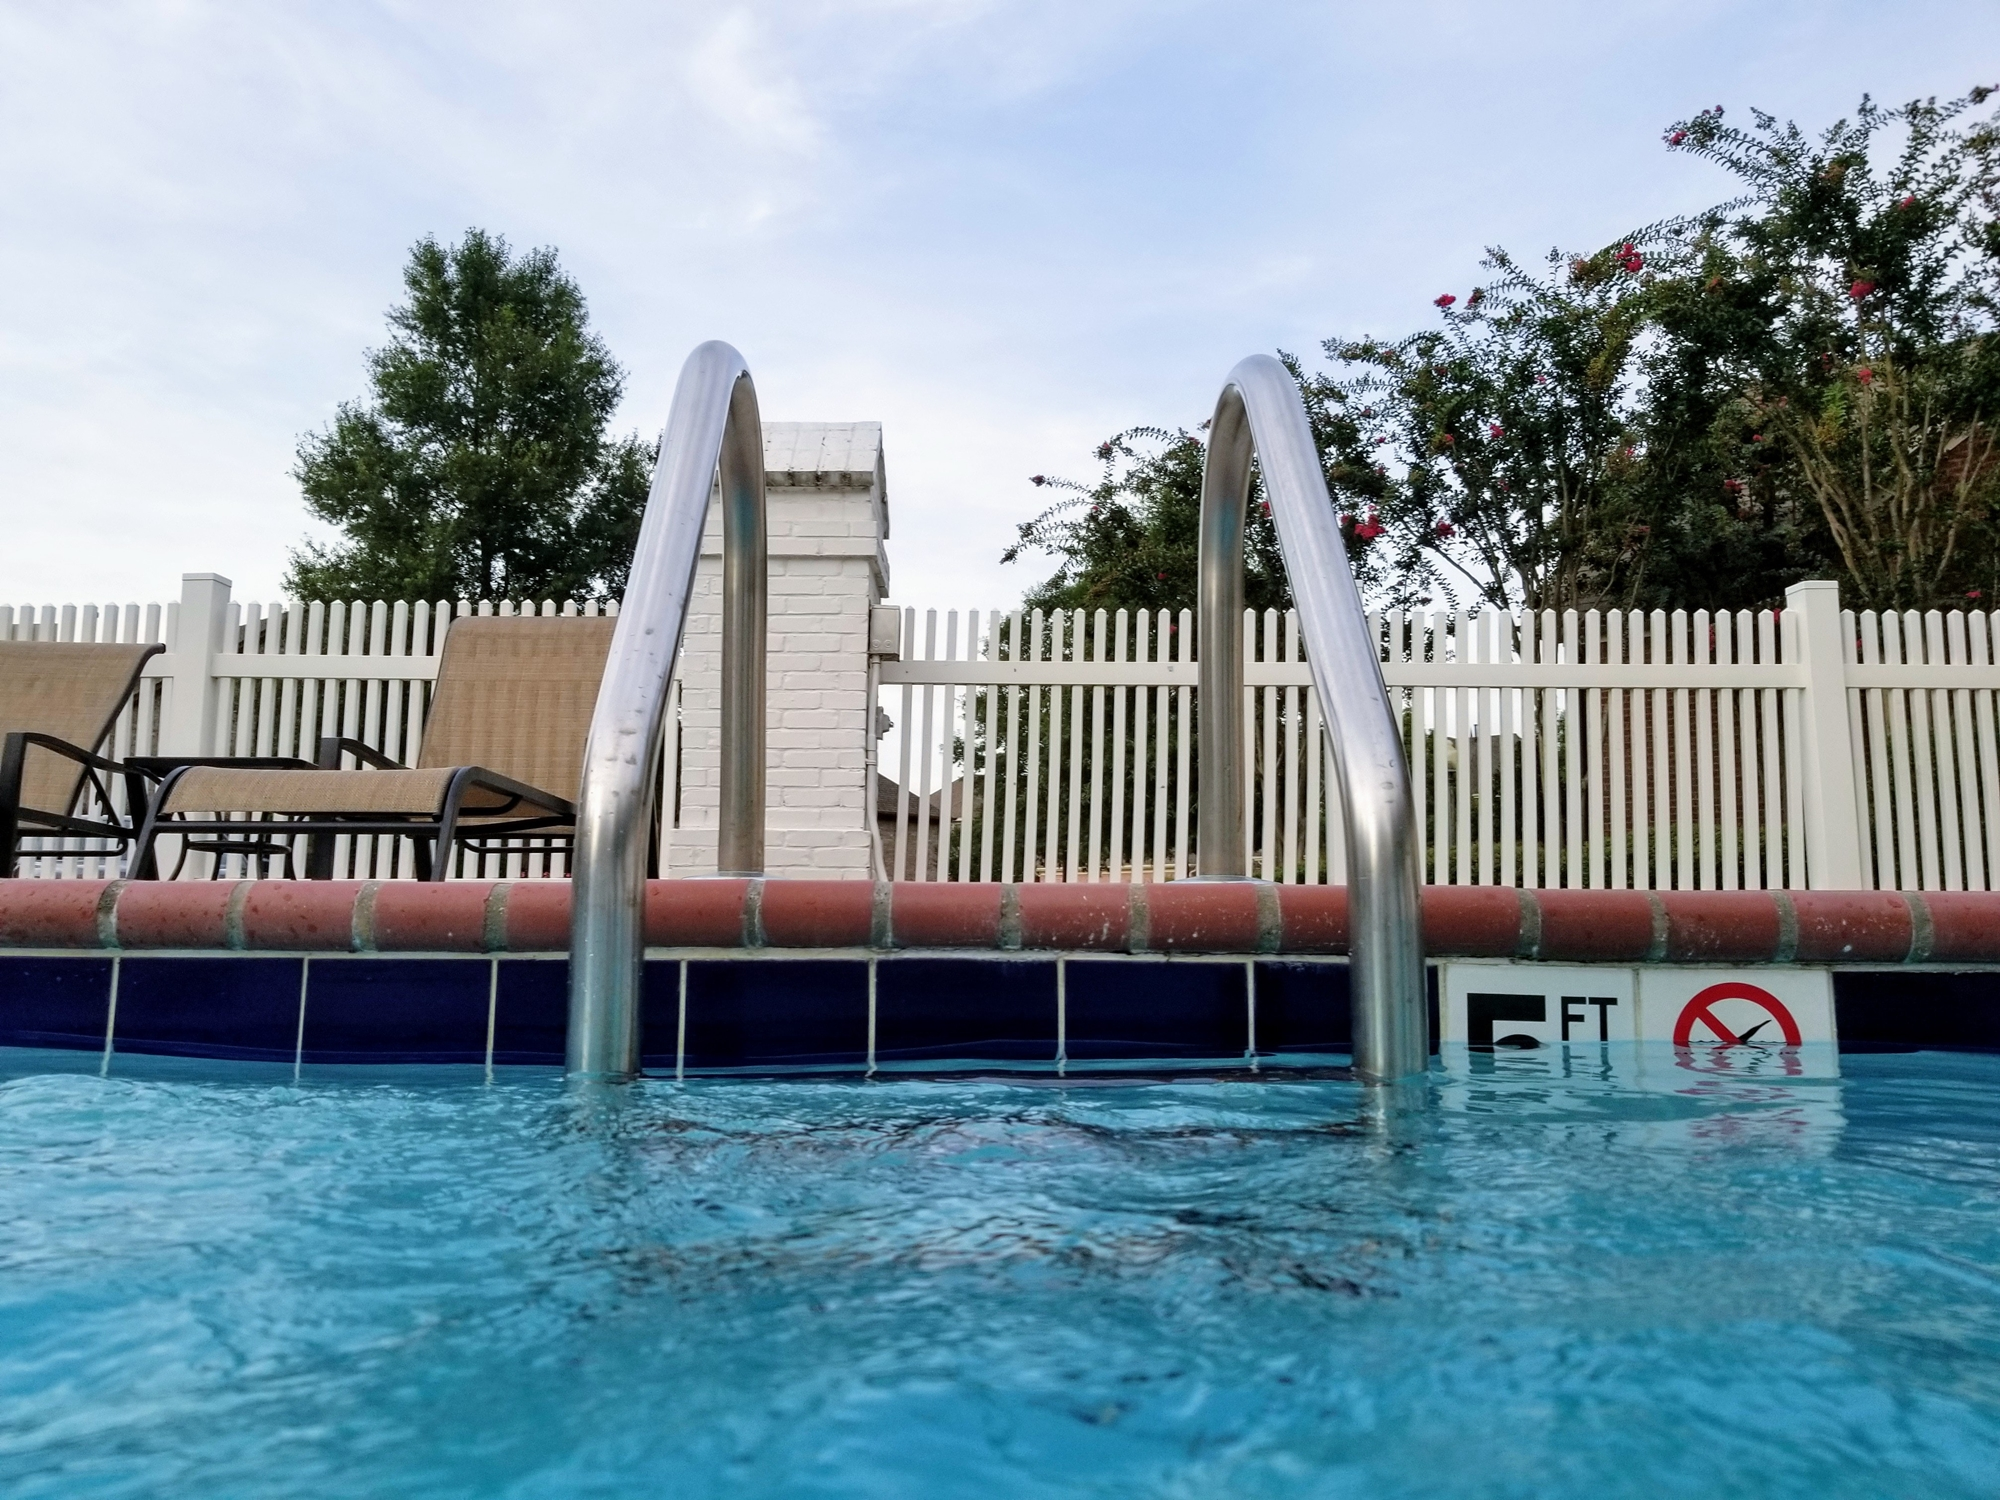 Pool Maintenance Mistakes You Should Avoid